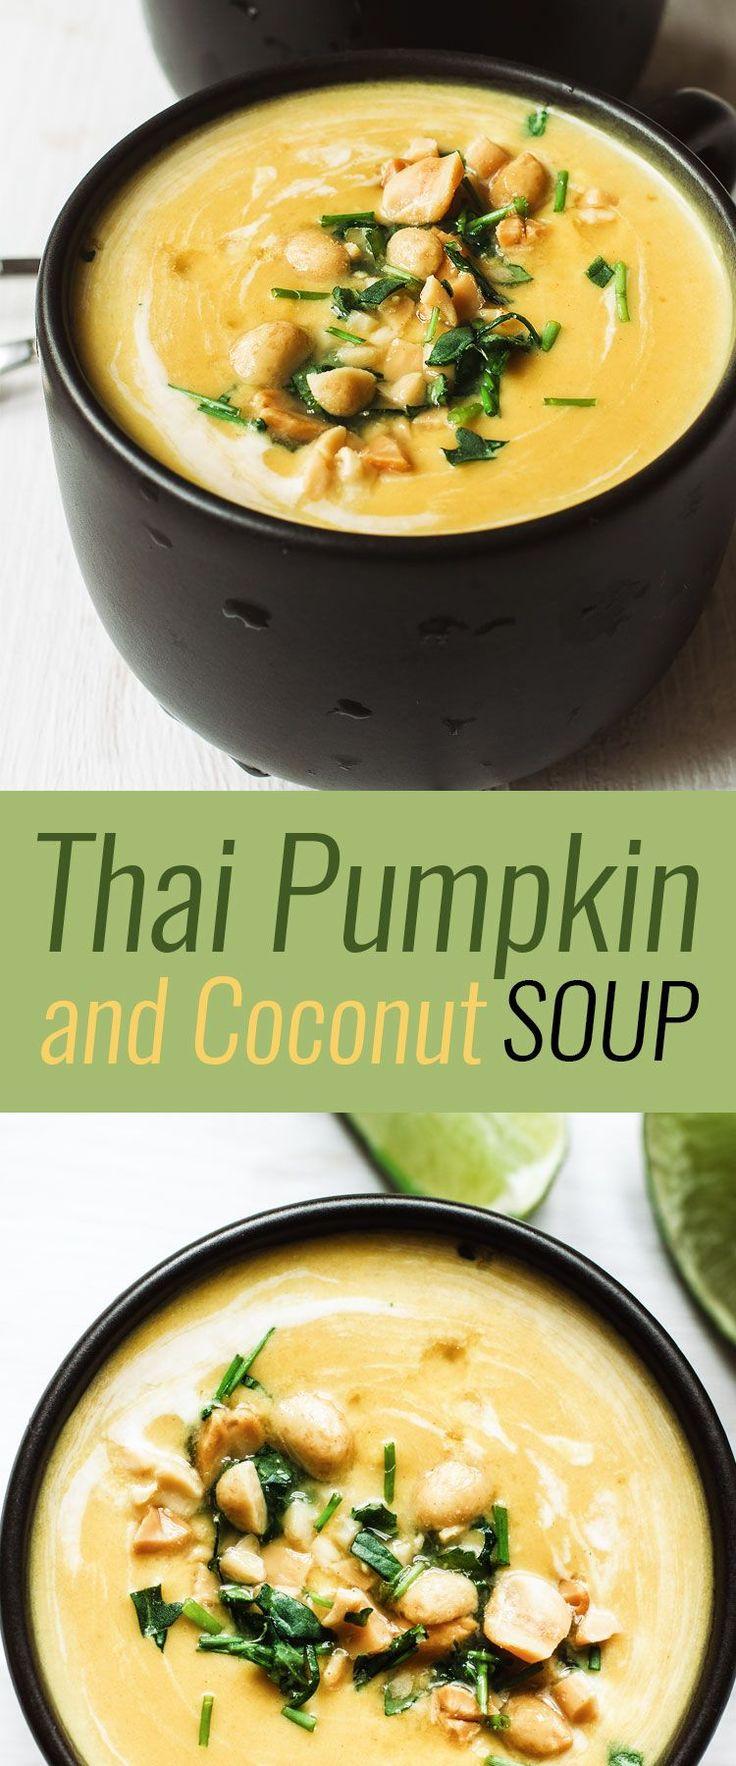 Comforting Thai Pumpkin and Coconut Soup